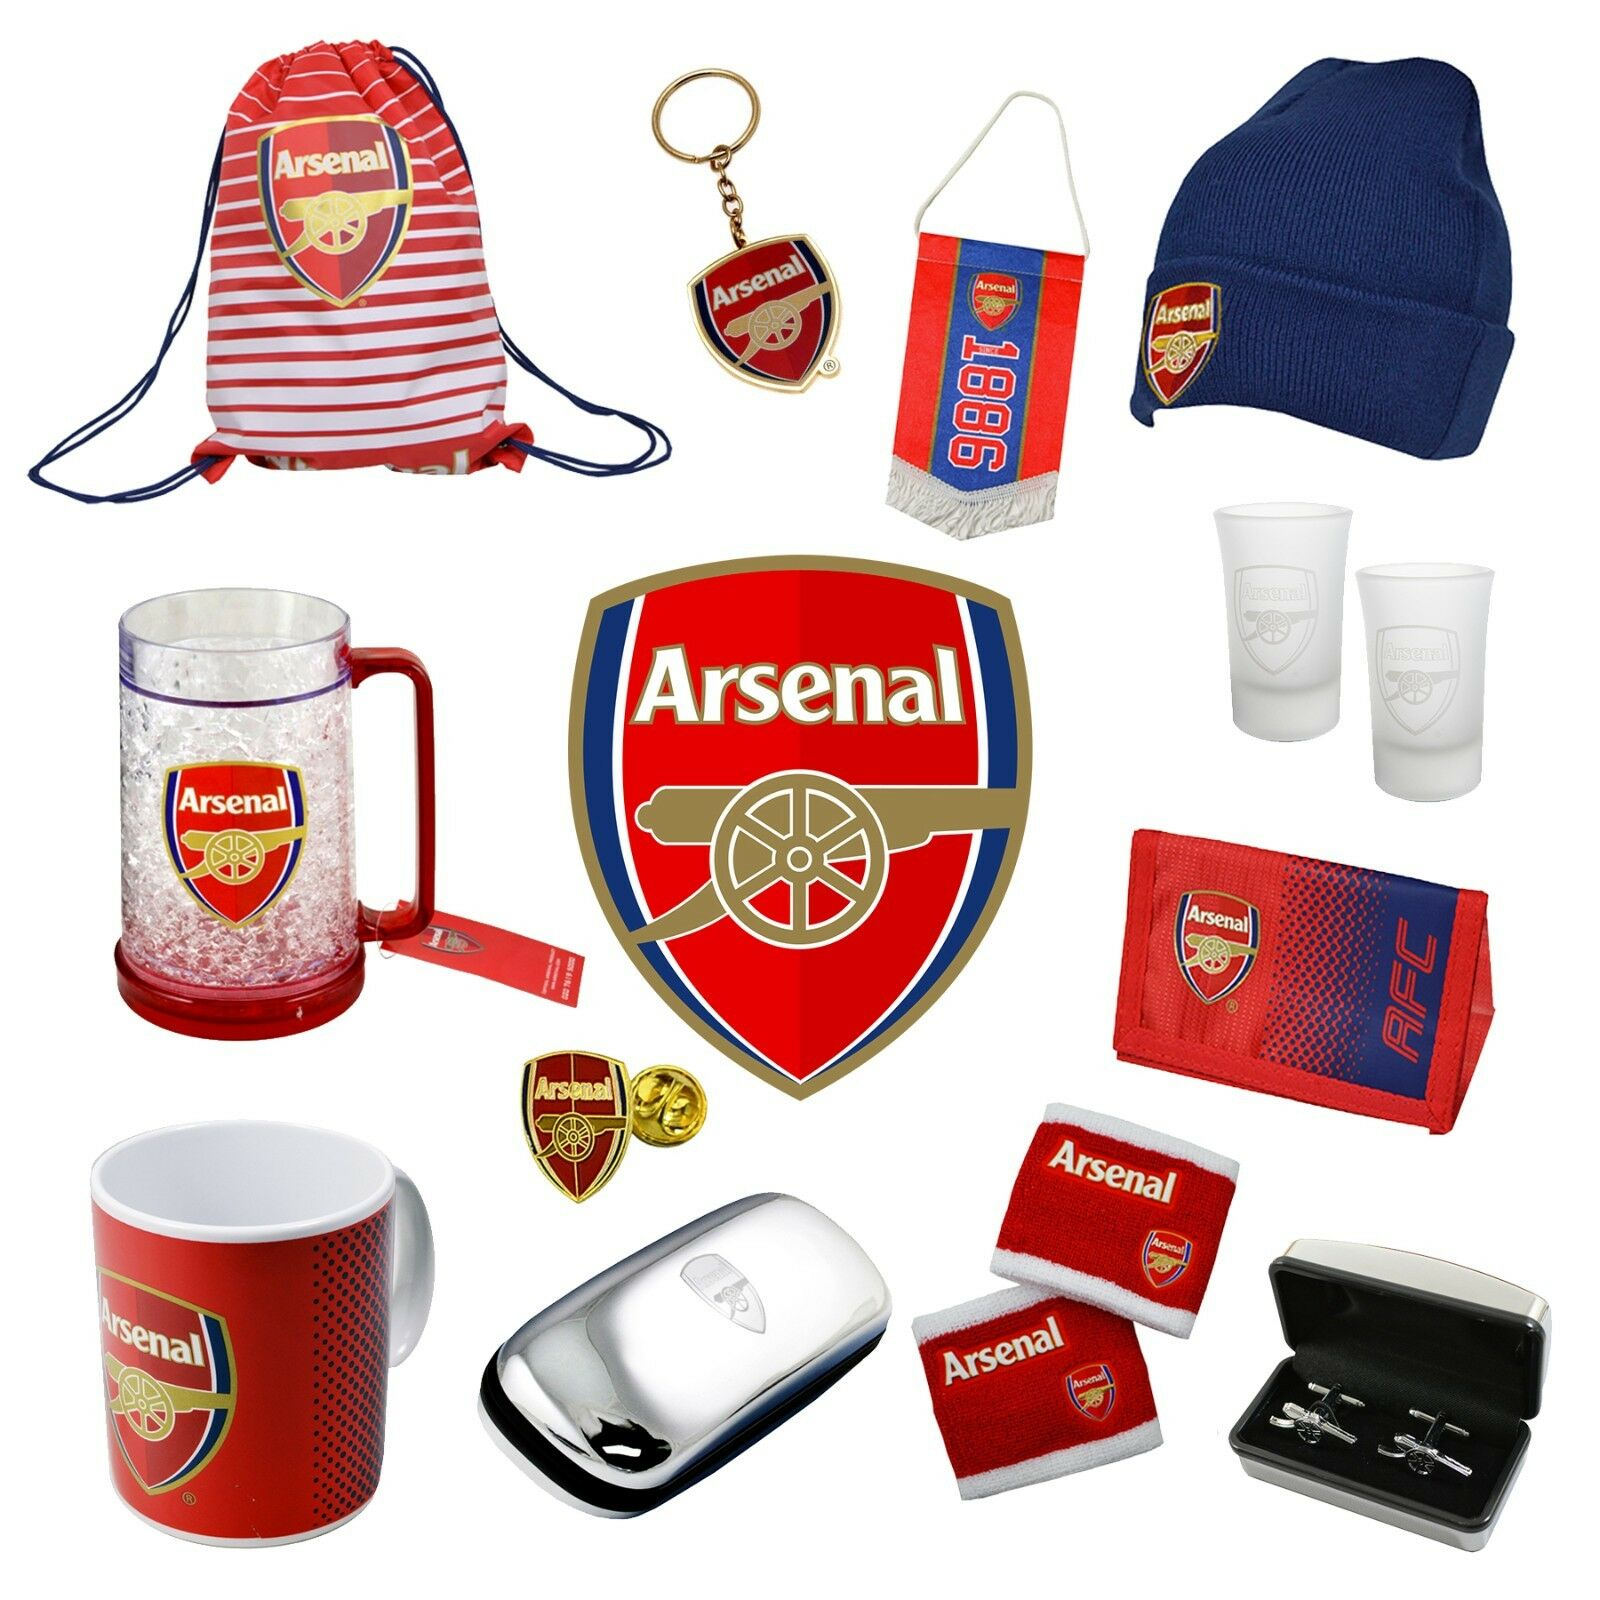 Details about ARSENAL - Official Football Club Merchandise (Gift d75e1741b